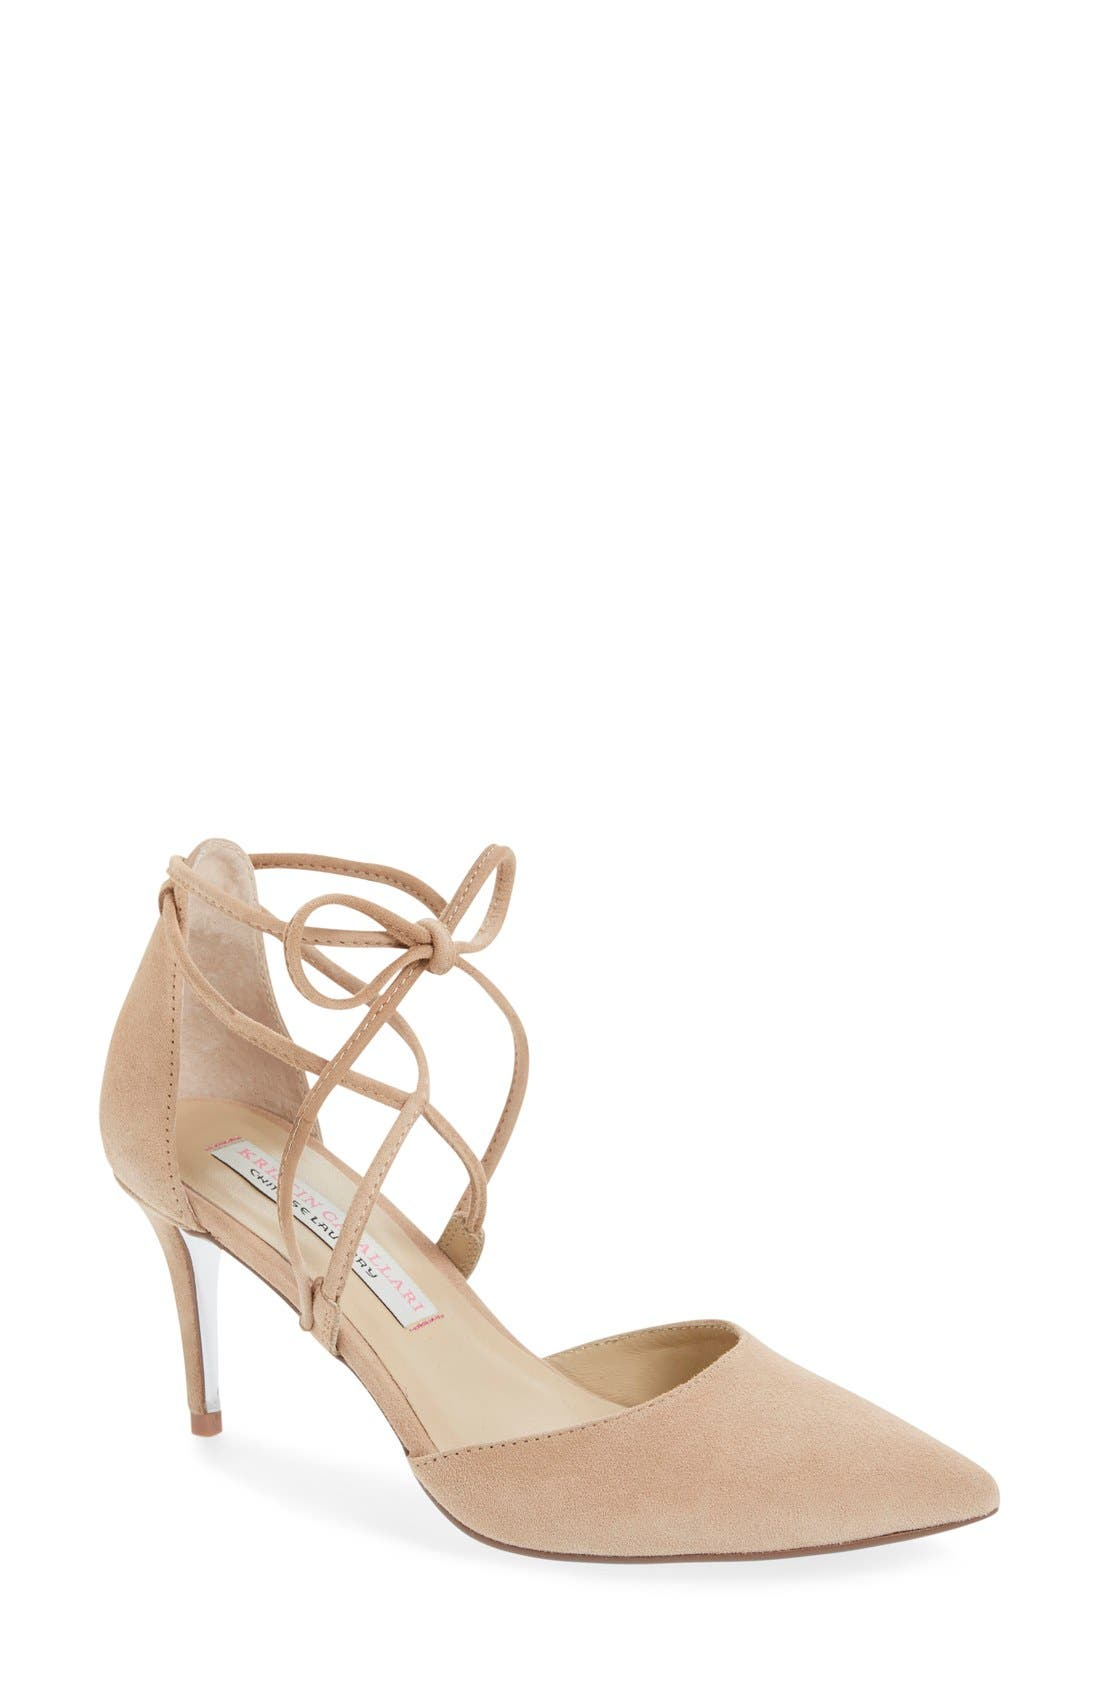 Alternate Image 1 Selected - Kristin Cavallari 'Opel' Lace-Up Pointy Toe Pump (Women)